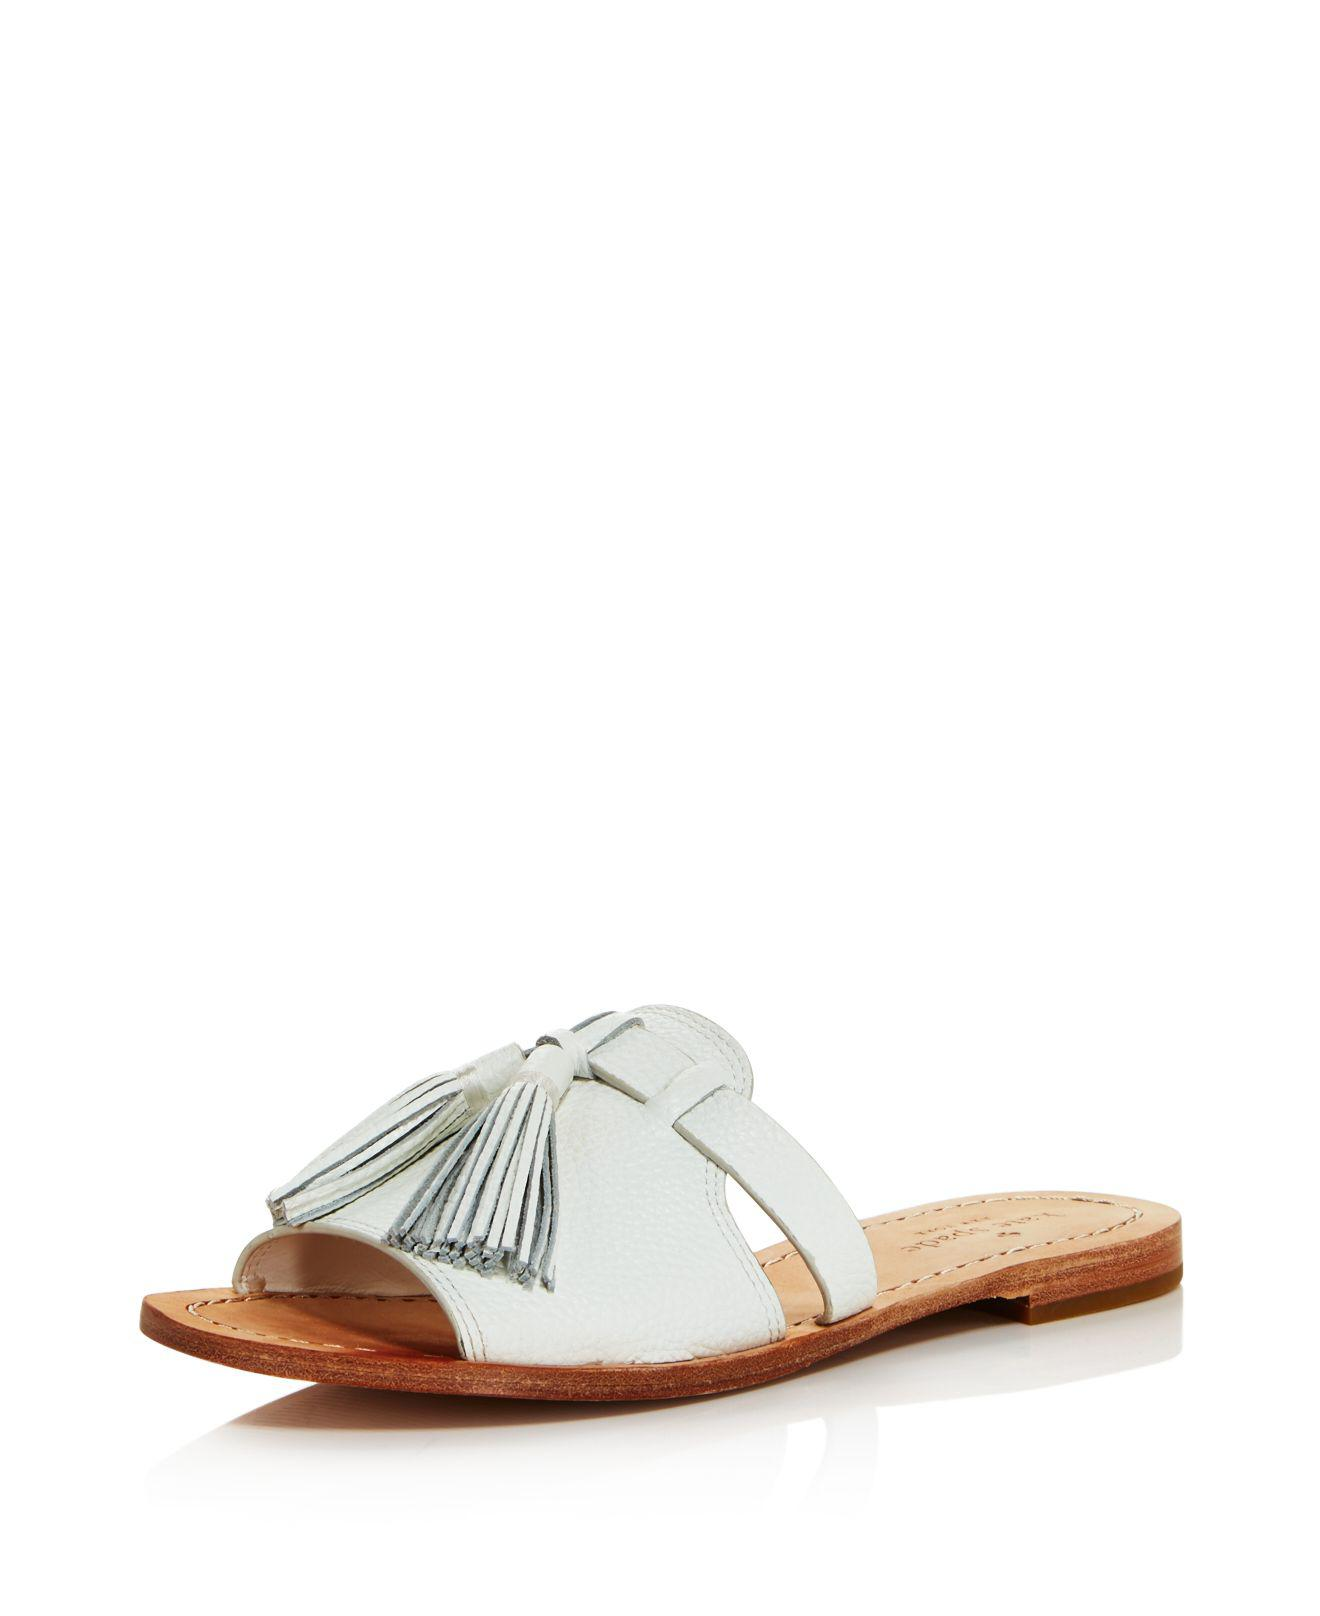 Kate Spade New York Women's Coby Metallic Leather Tassel Slide Sandals Outlet Pay With Paypal Outlet Shop For GqFhf2